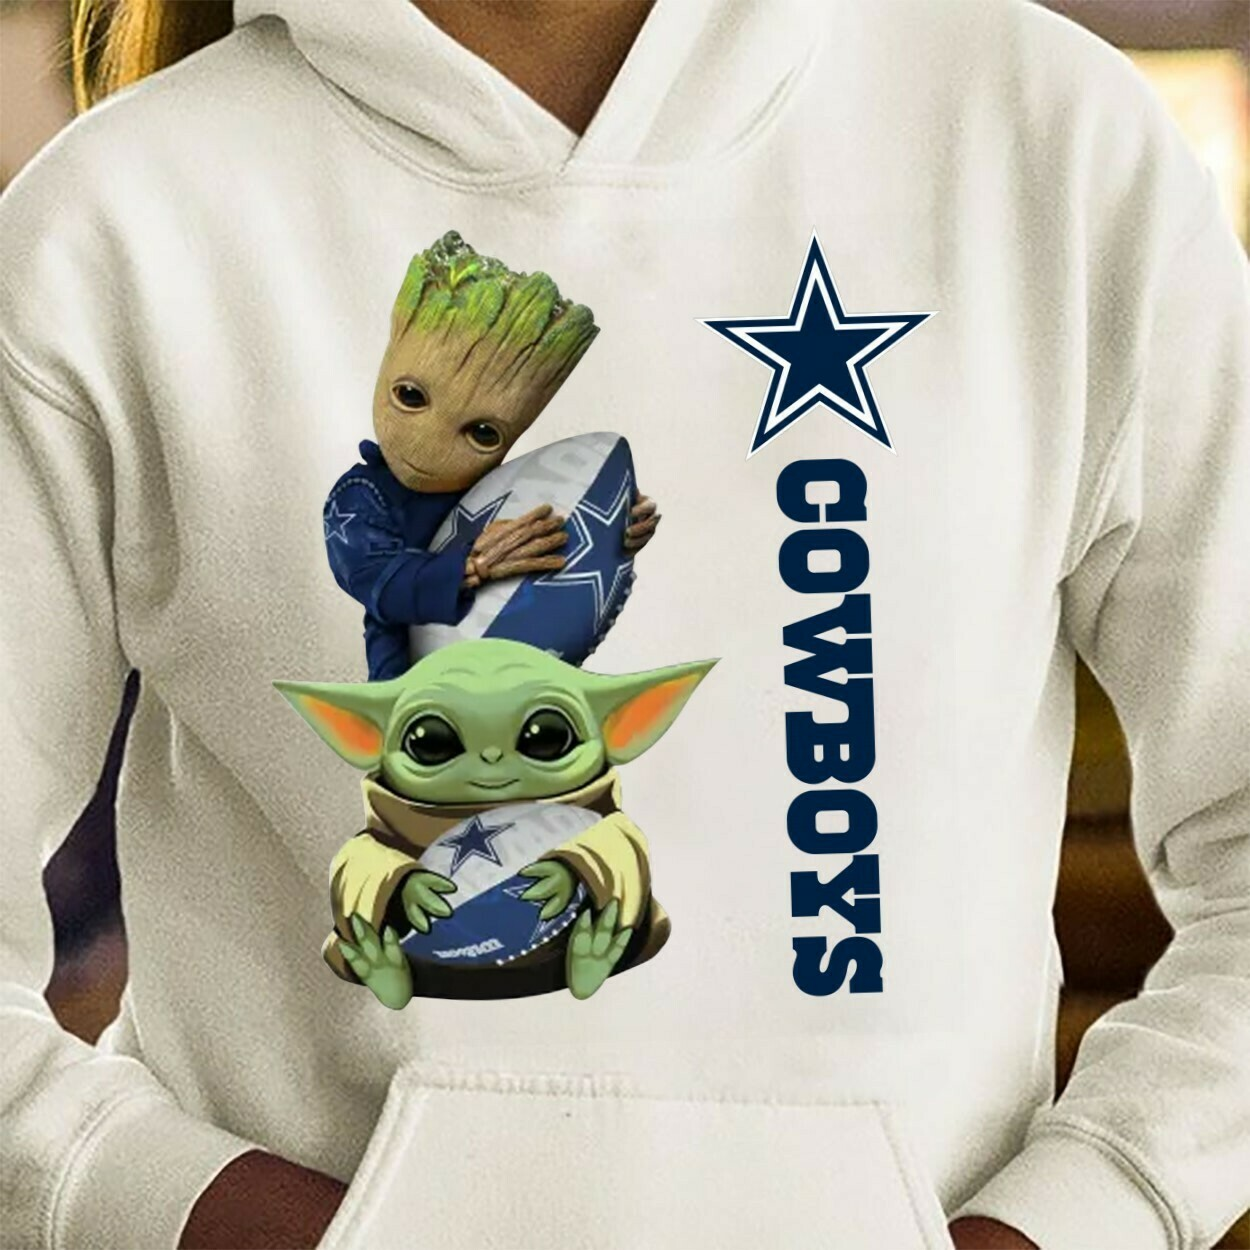 Baby Yoda and Baby Groot hug Dallas Cowboys,Star Wars The Mandalorian The Child First Memories Floating NFL Football Team Fan  T-Shirt Hoodie Sweatshirt Sweater Tee Kids Youth Gifts Jolly Family Gifts